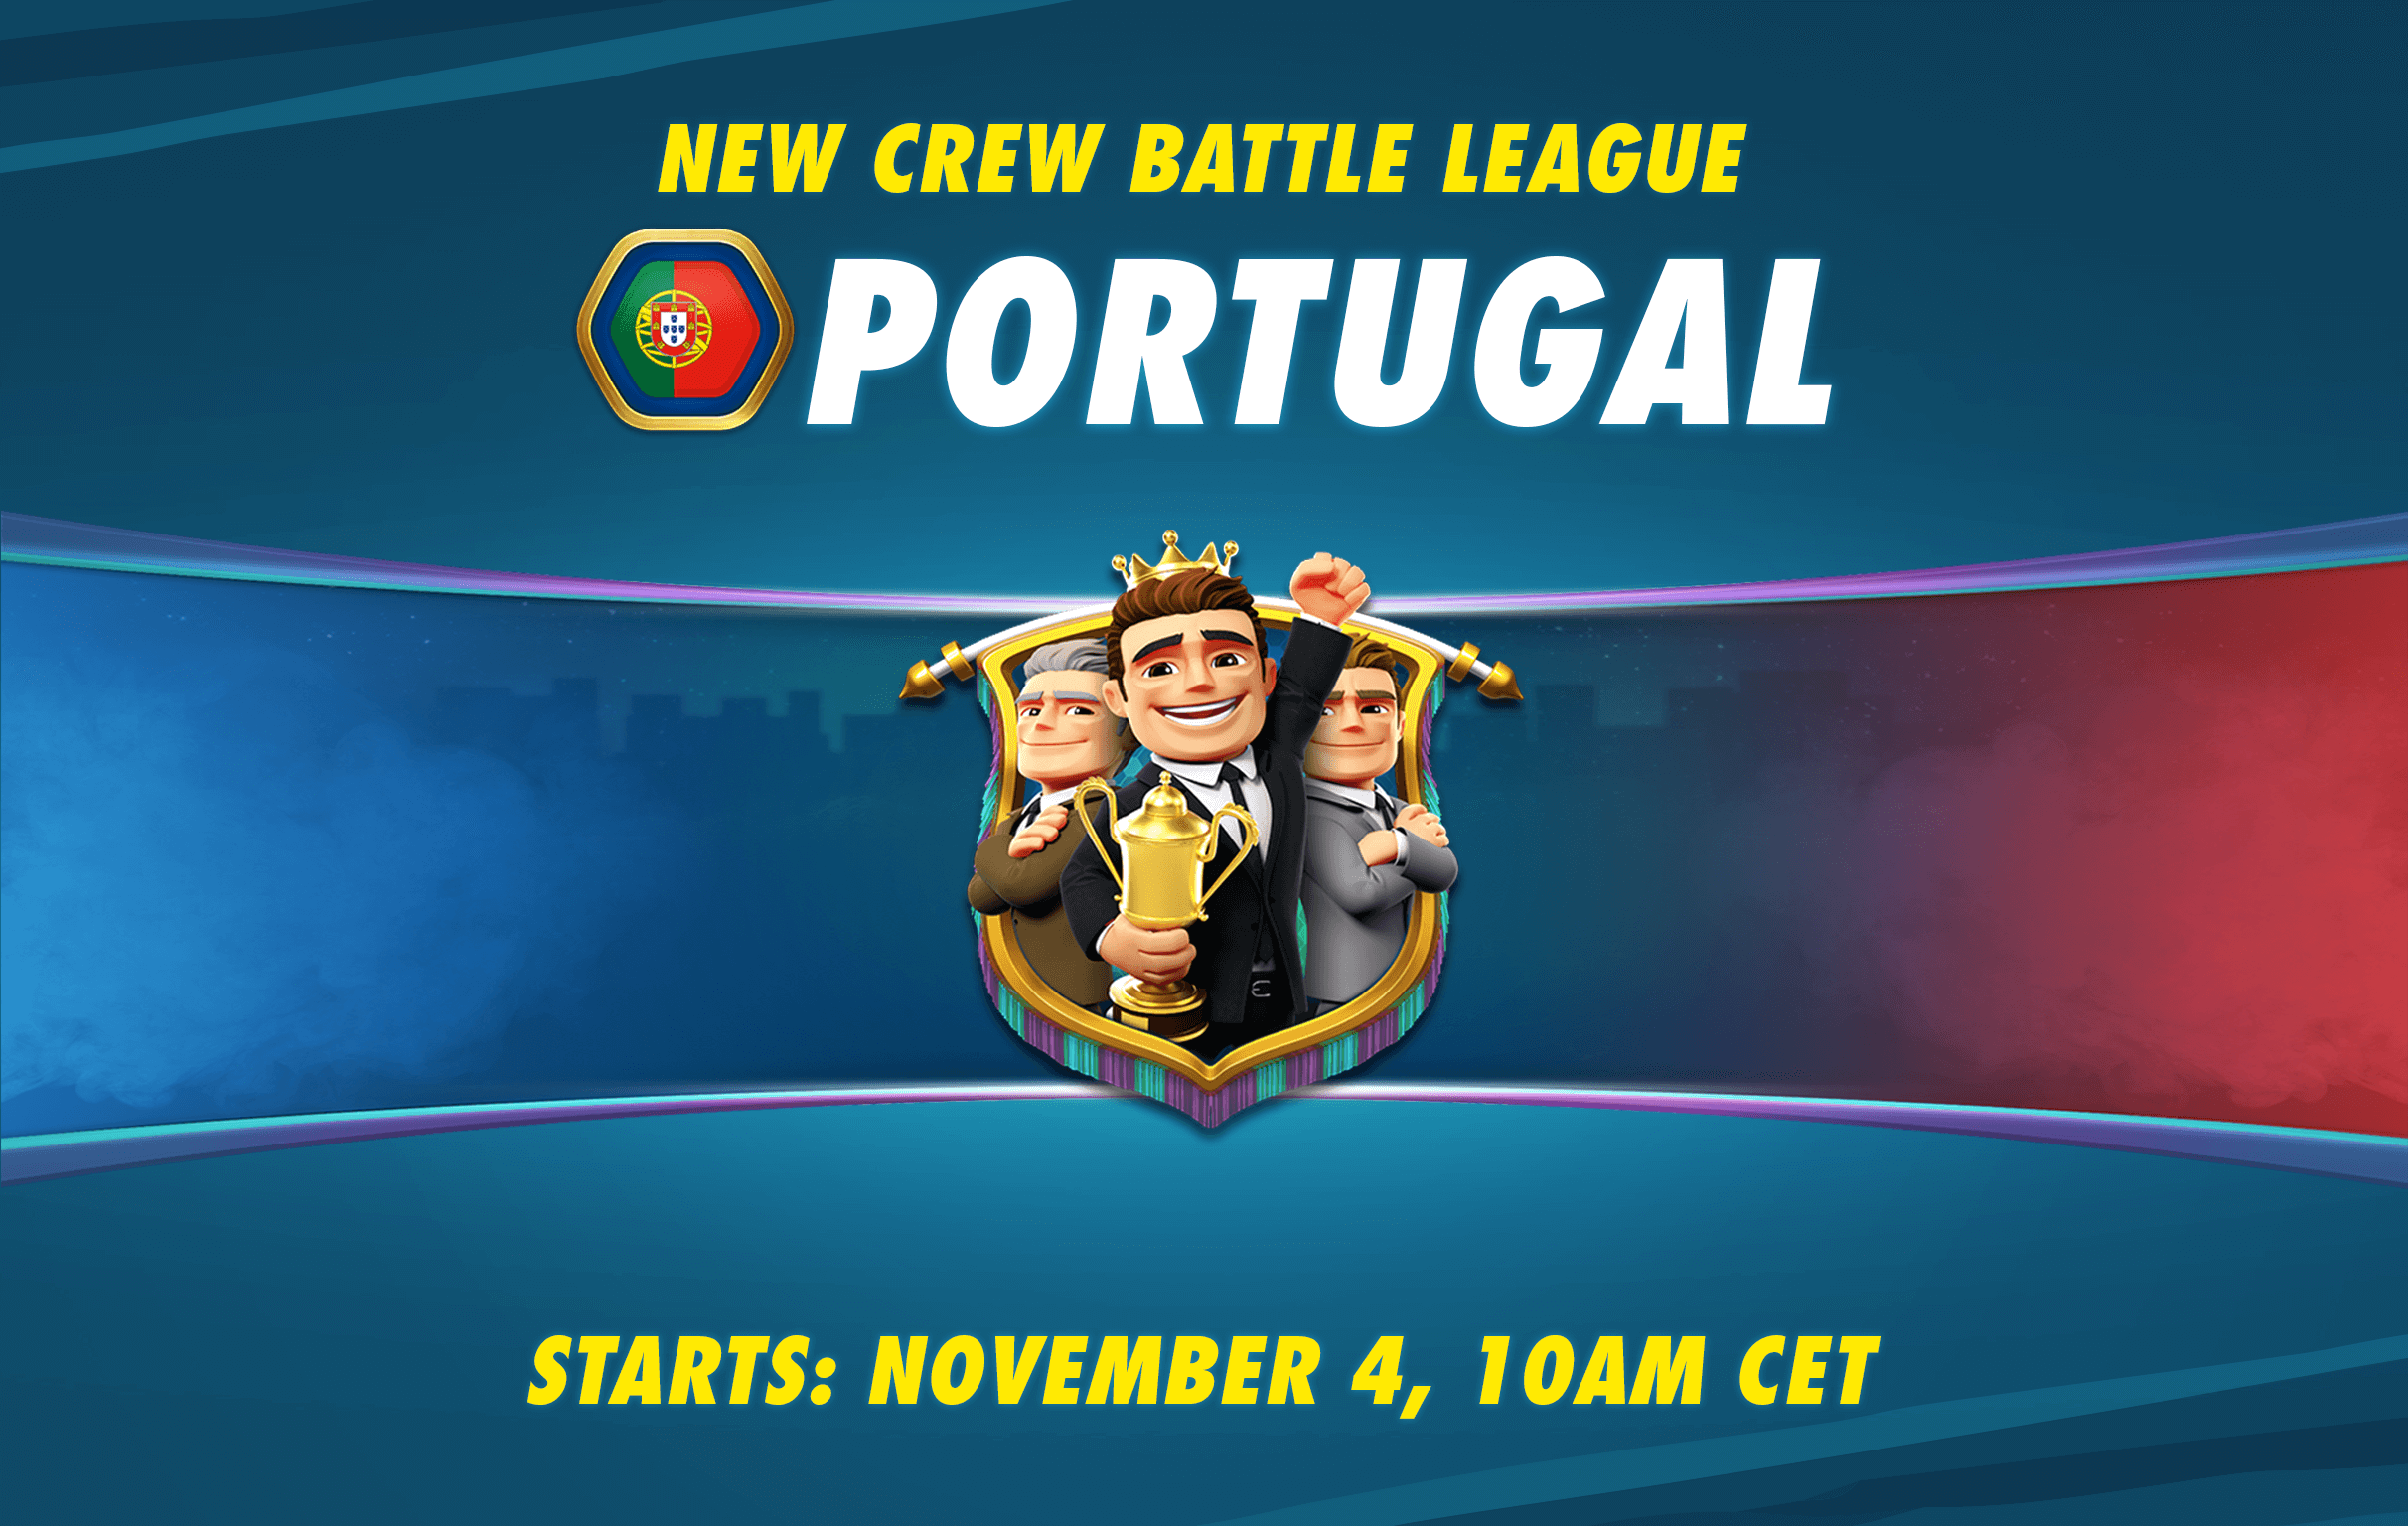 CP_Crew Battle League_PT.png